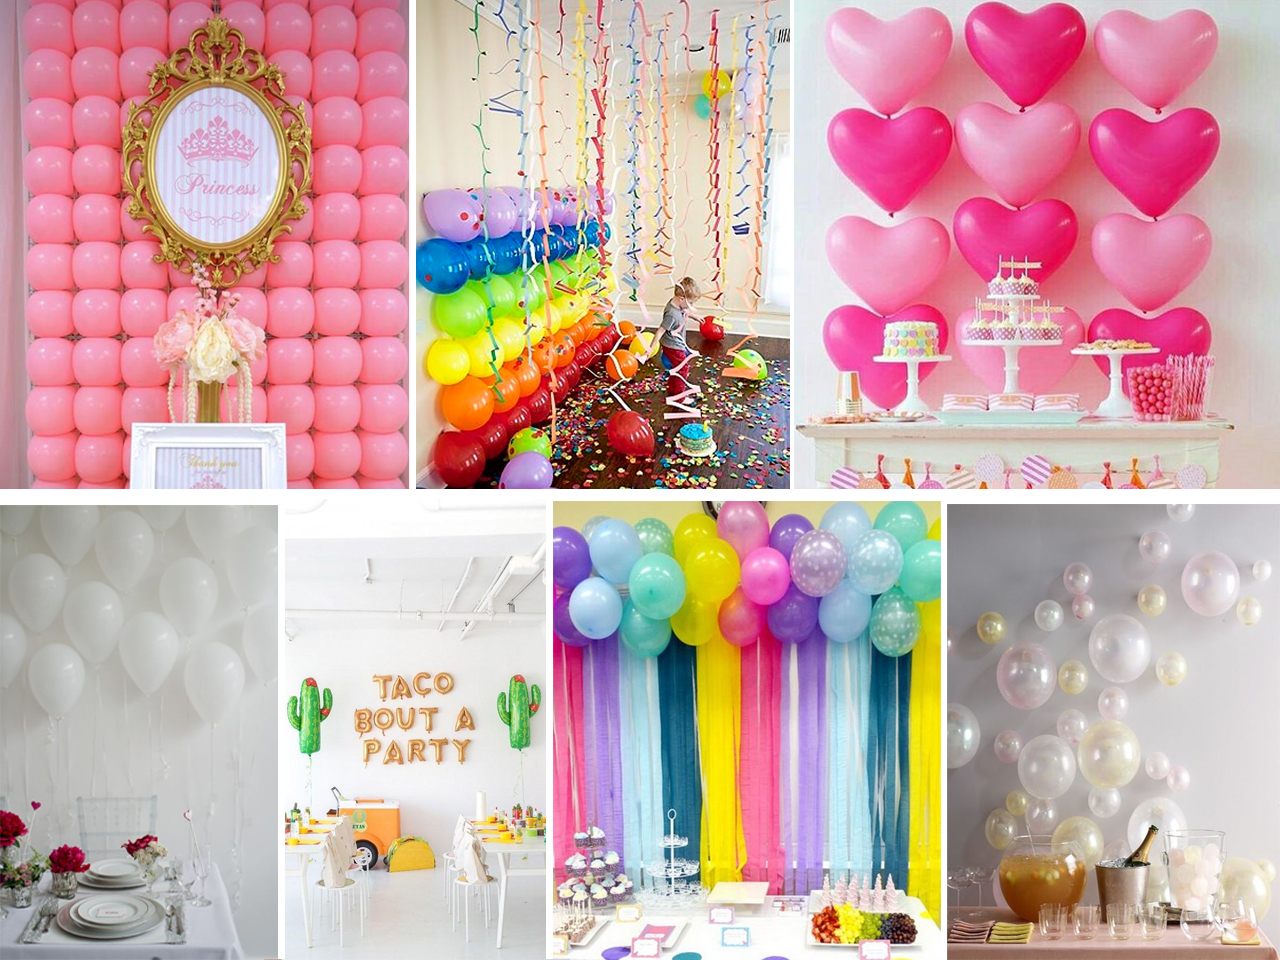 Descubre c mo decorar con globos con estas fant sticas ideas for Ideas para decorar paredes infantiles